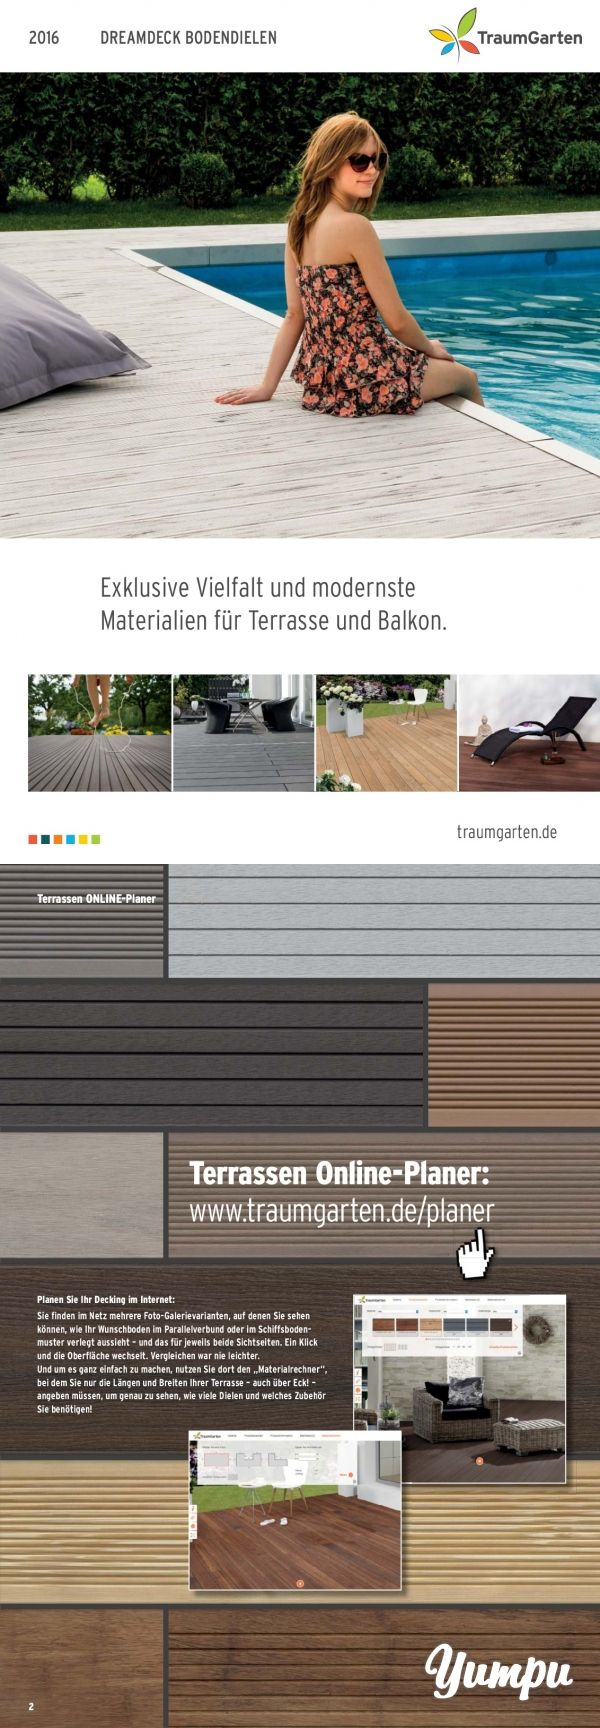 die 25 besten ideen zu wpc fliesen auf pinterest terrassenbelag wpc kleine decks und coole. Black Bedroom Furniture Sets. Home Design Ideas